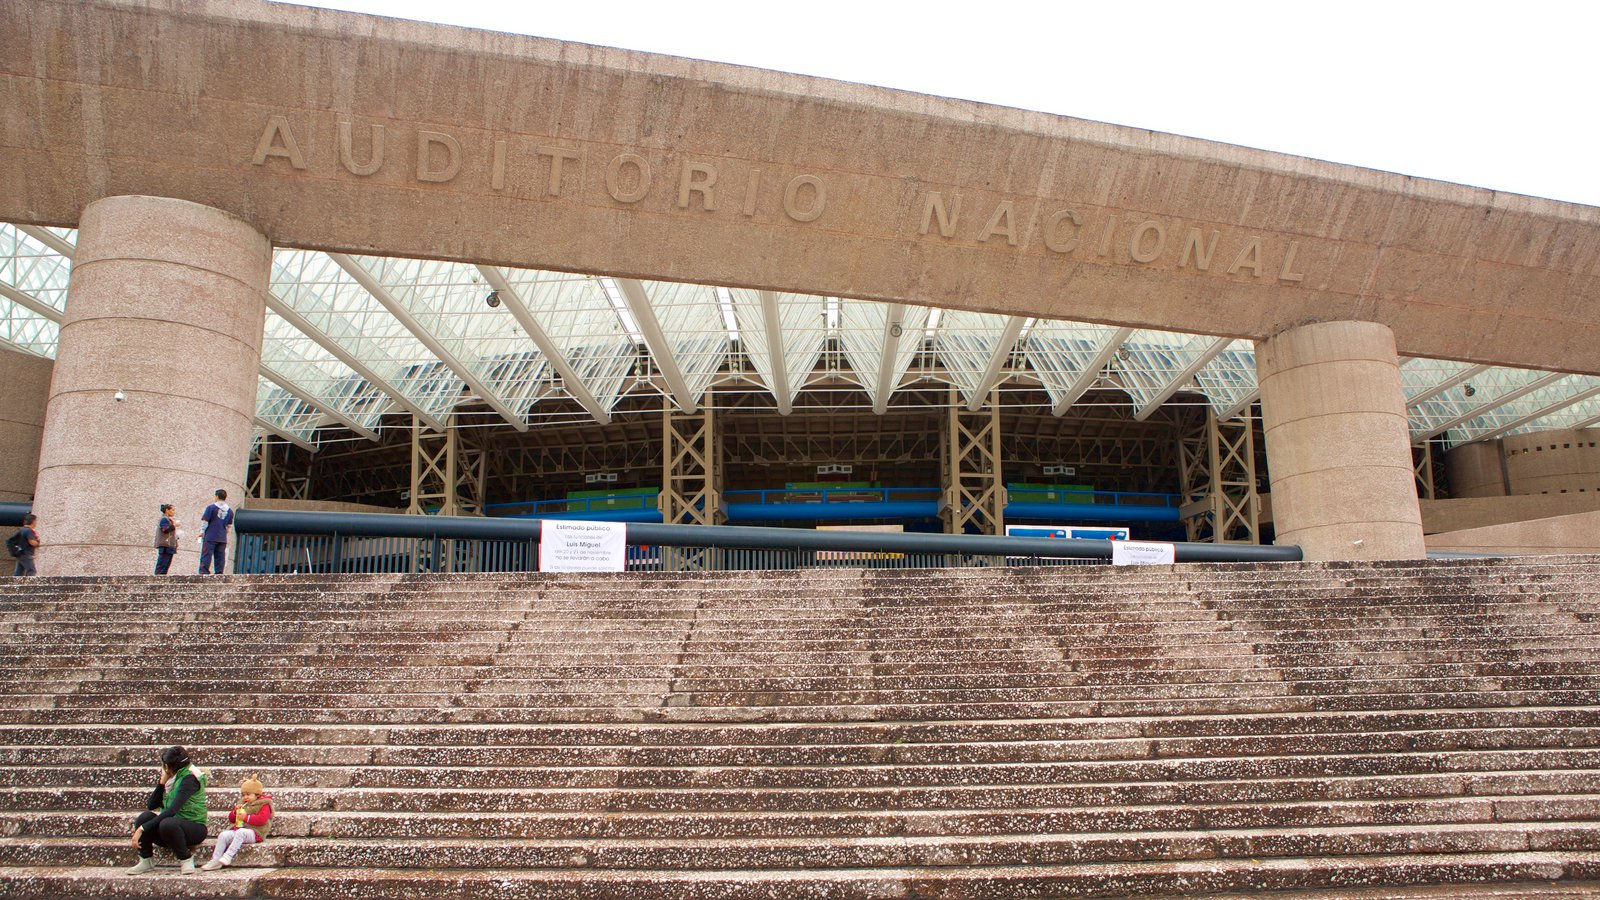 Auditorio Nacional which includes theater scenes and modern architecture